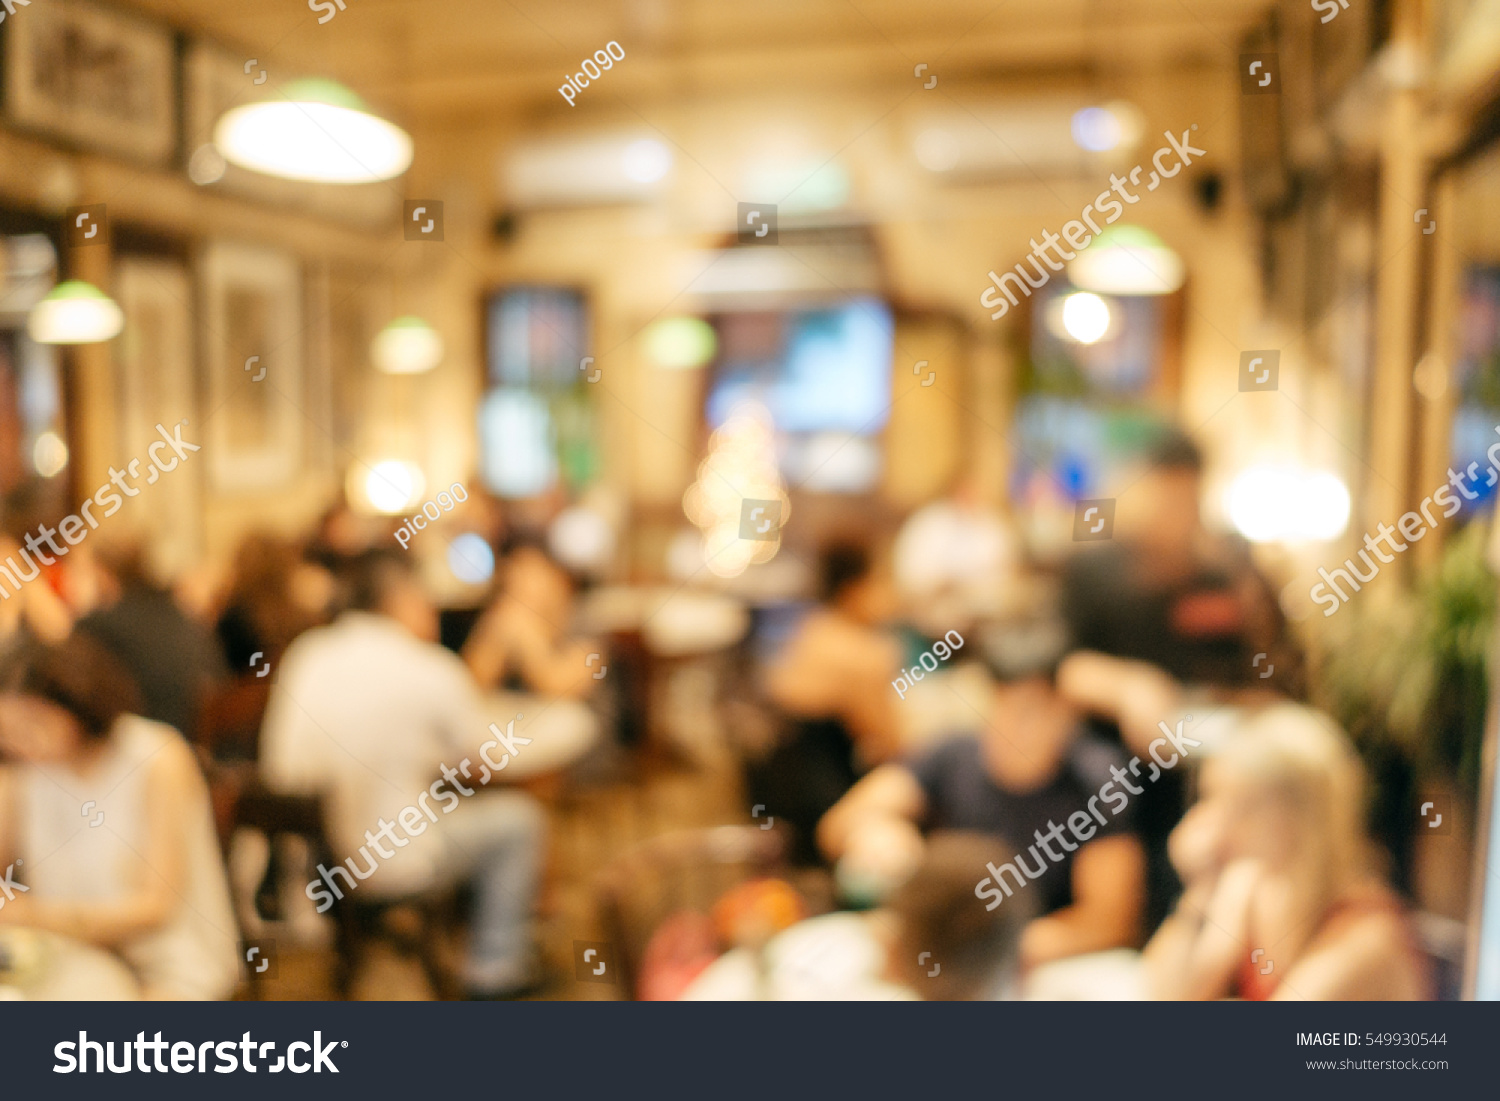 Abstract blurred restaurant interior background customers